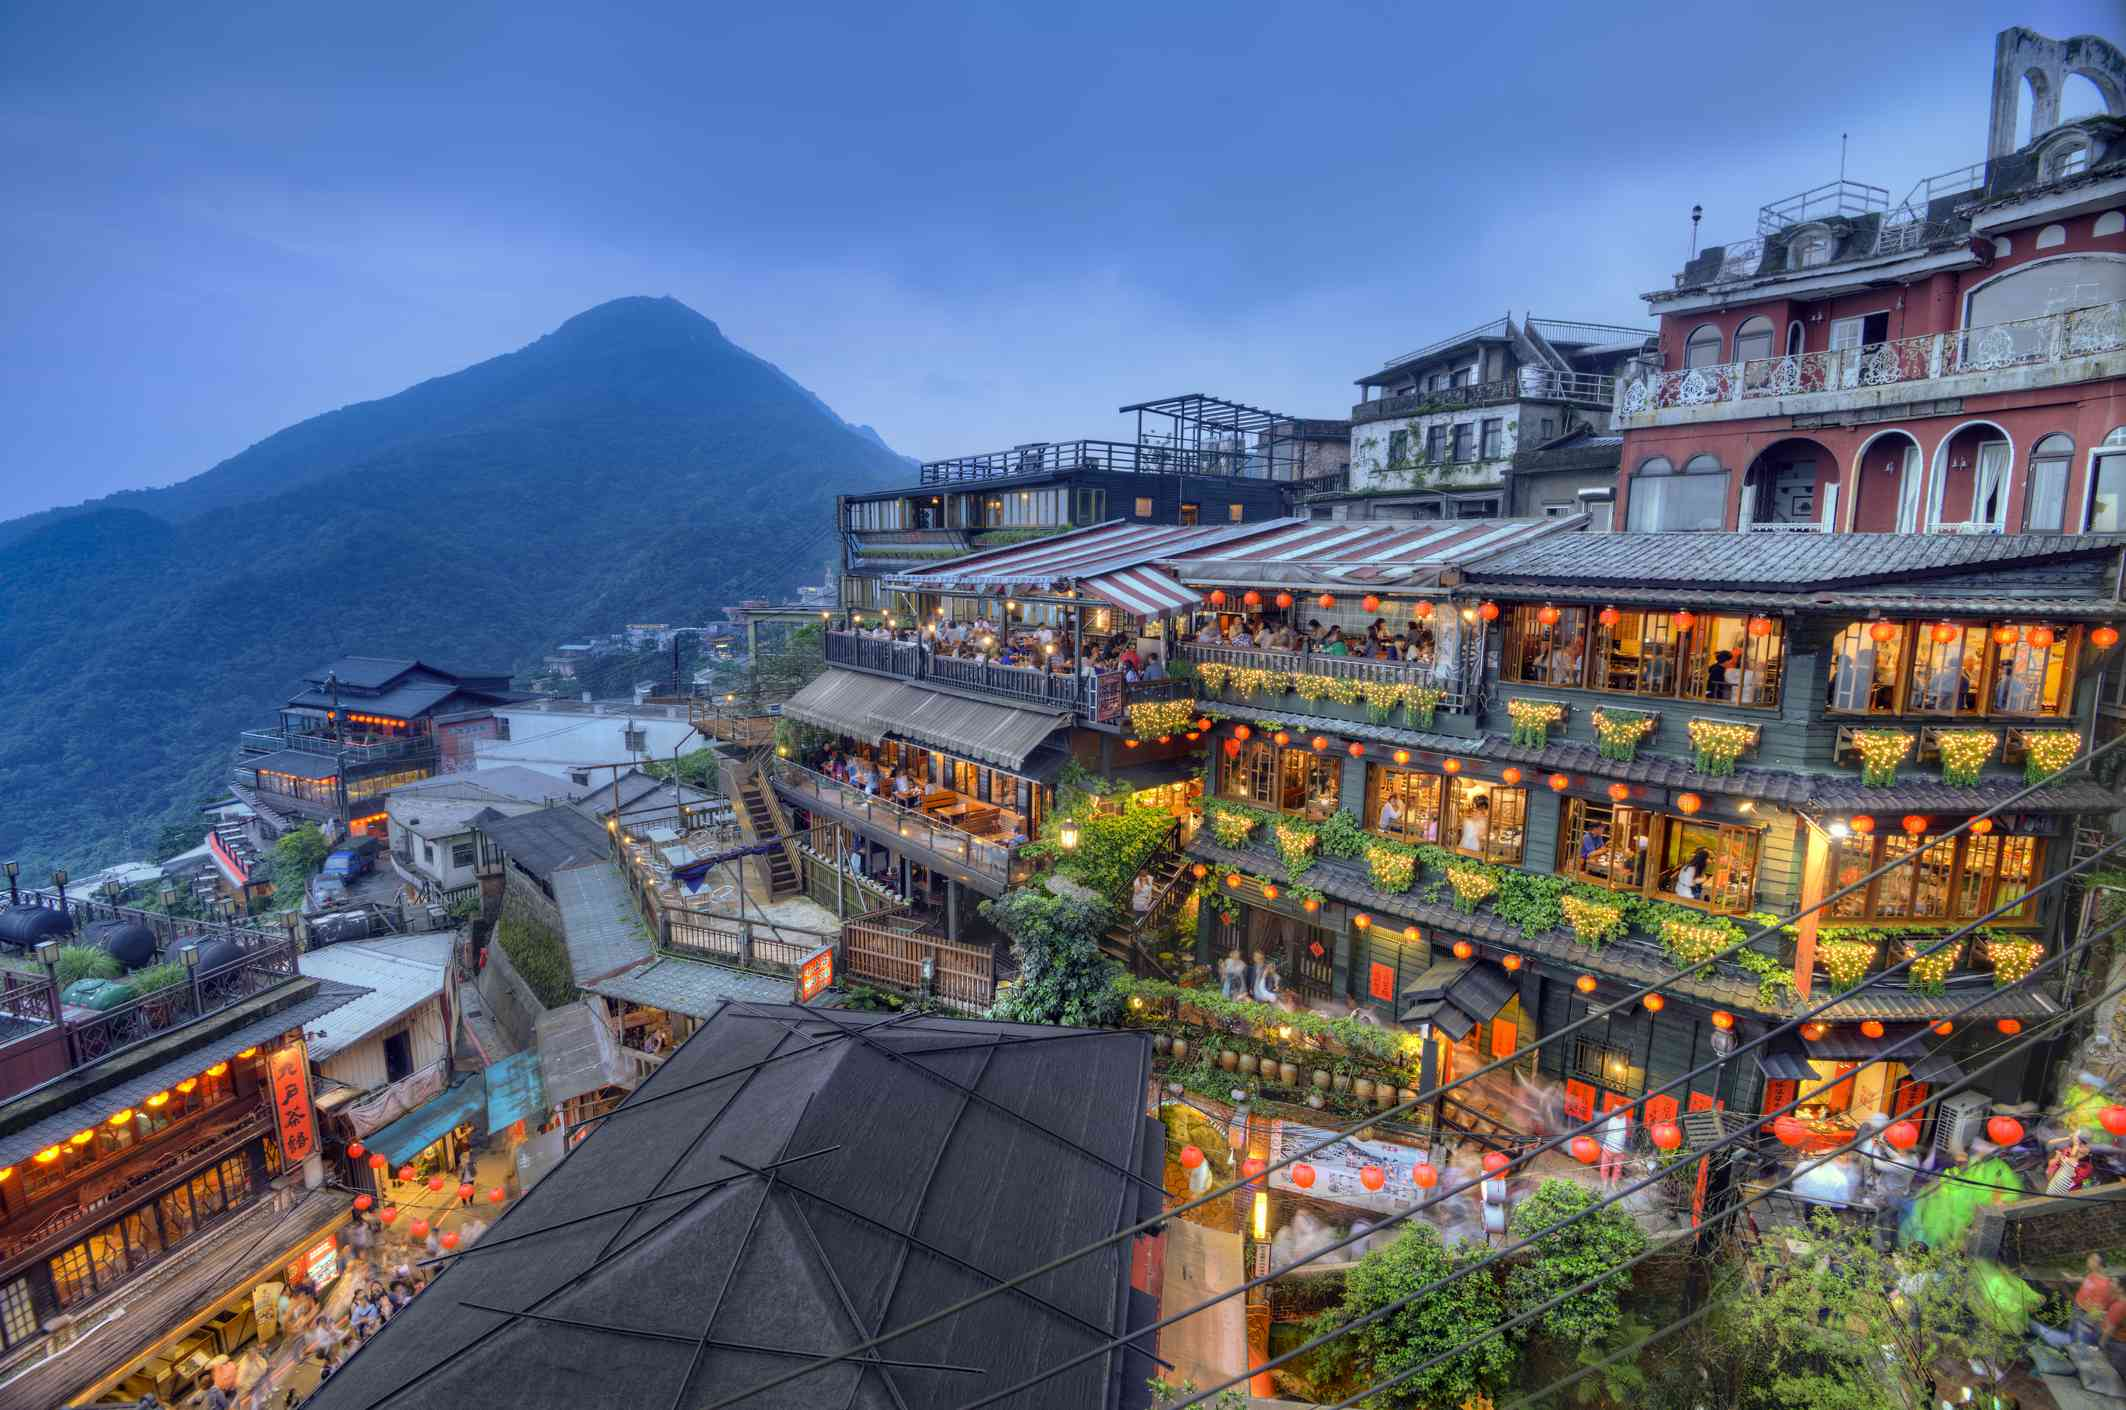 Beautifully decorated teahouses at the touristy mountain town of Juifen in Taiwan.